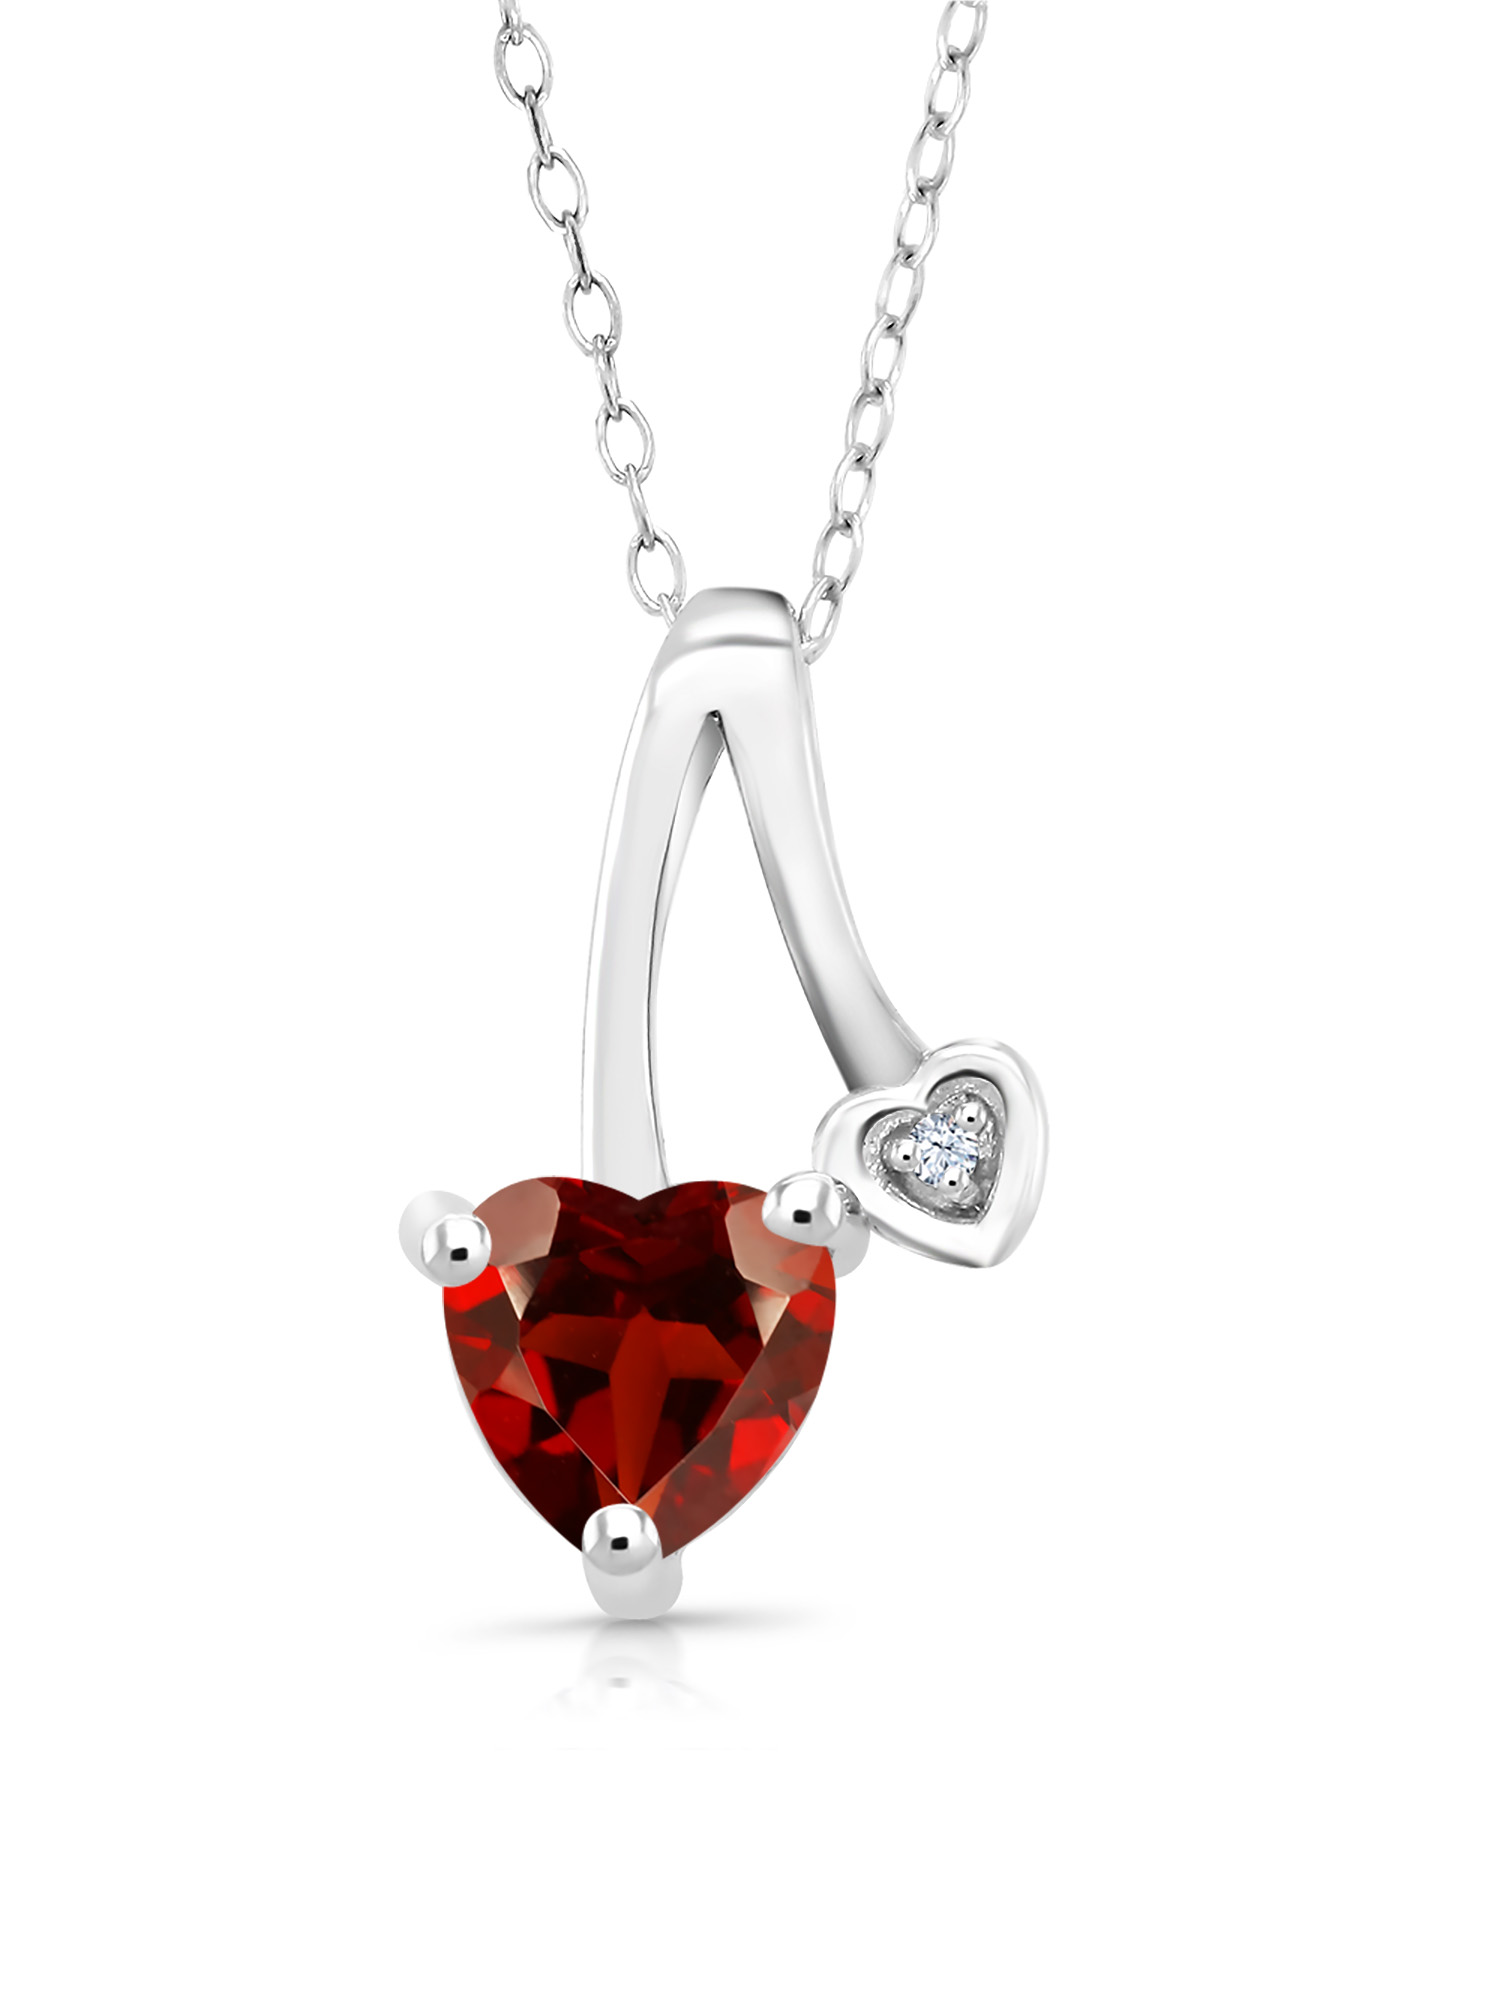 0.91 Ct Heart Shape Red Garnet White Created Sapphire 925 Silver Pendant by